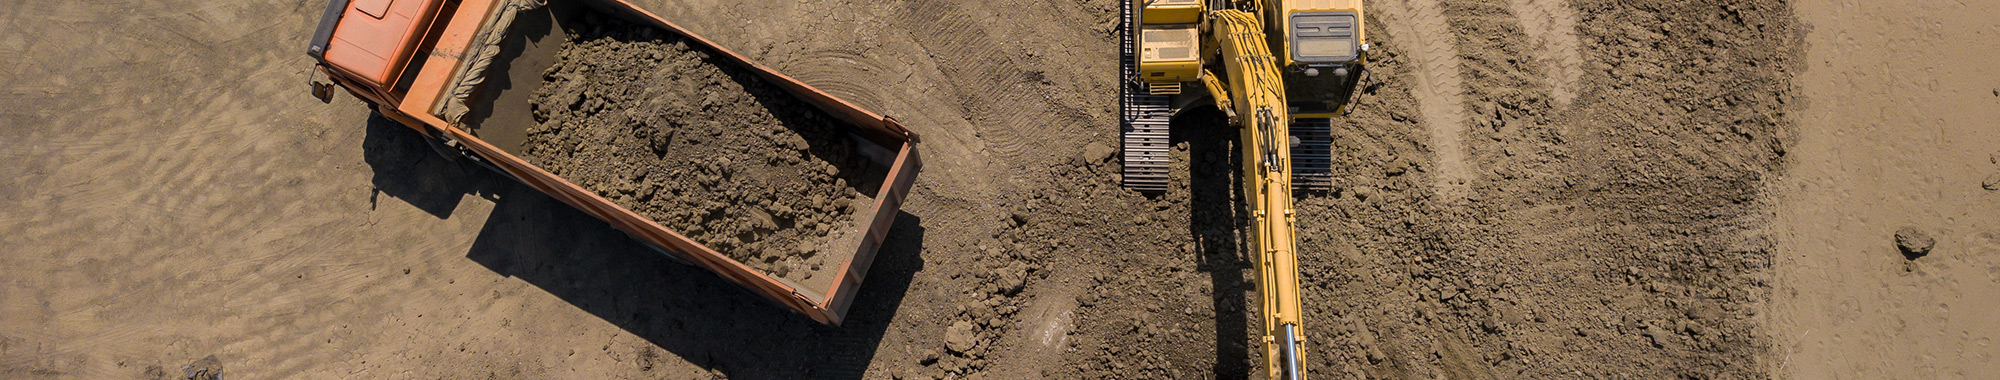 Aerial photo looking overhead at an excavator filling a dump truck